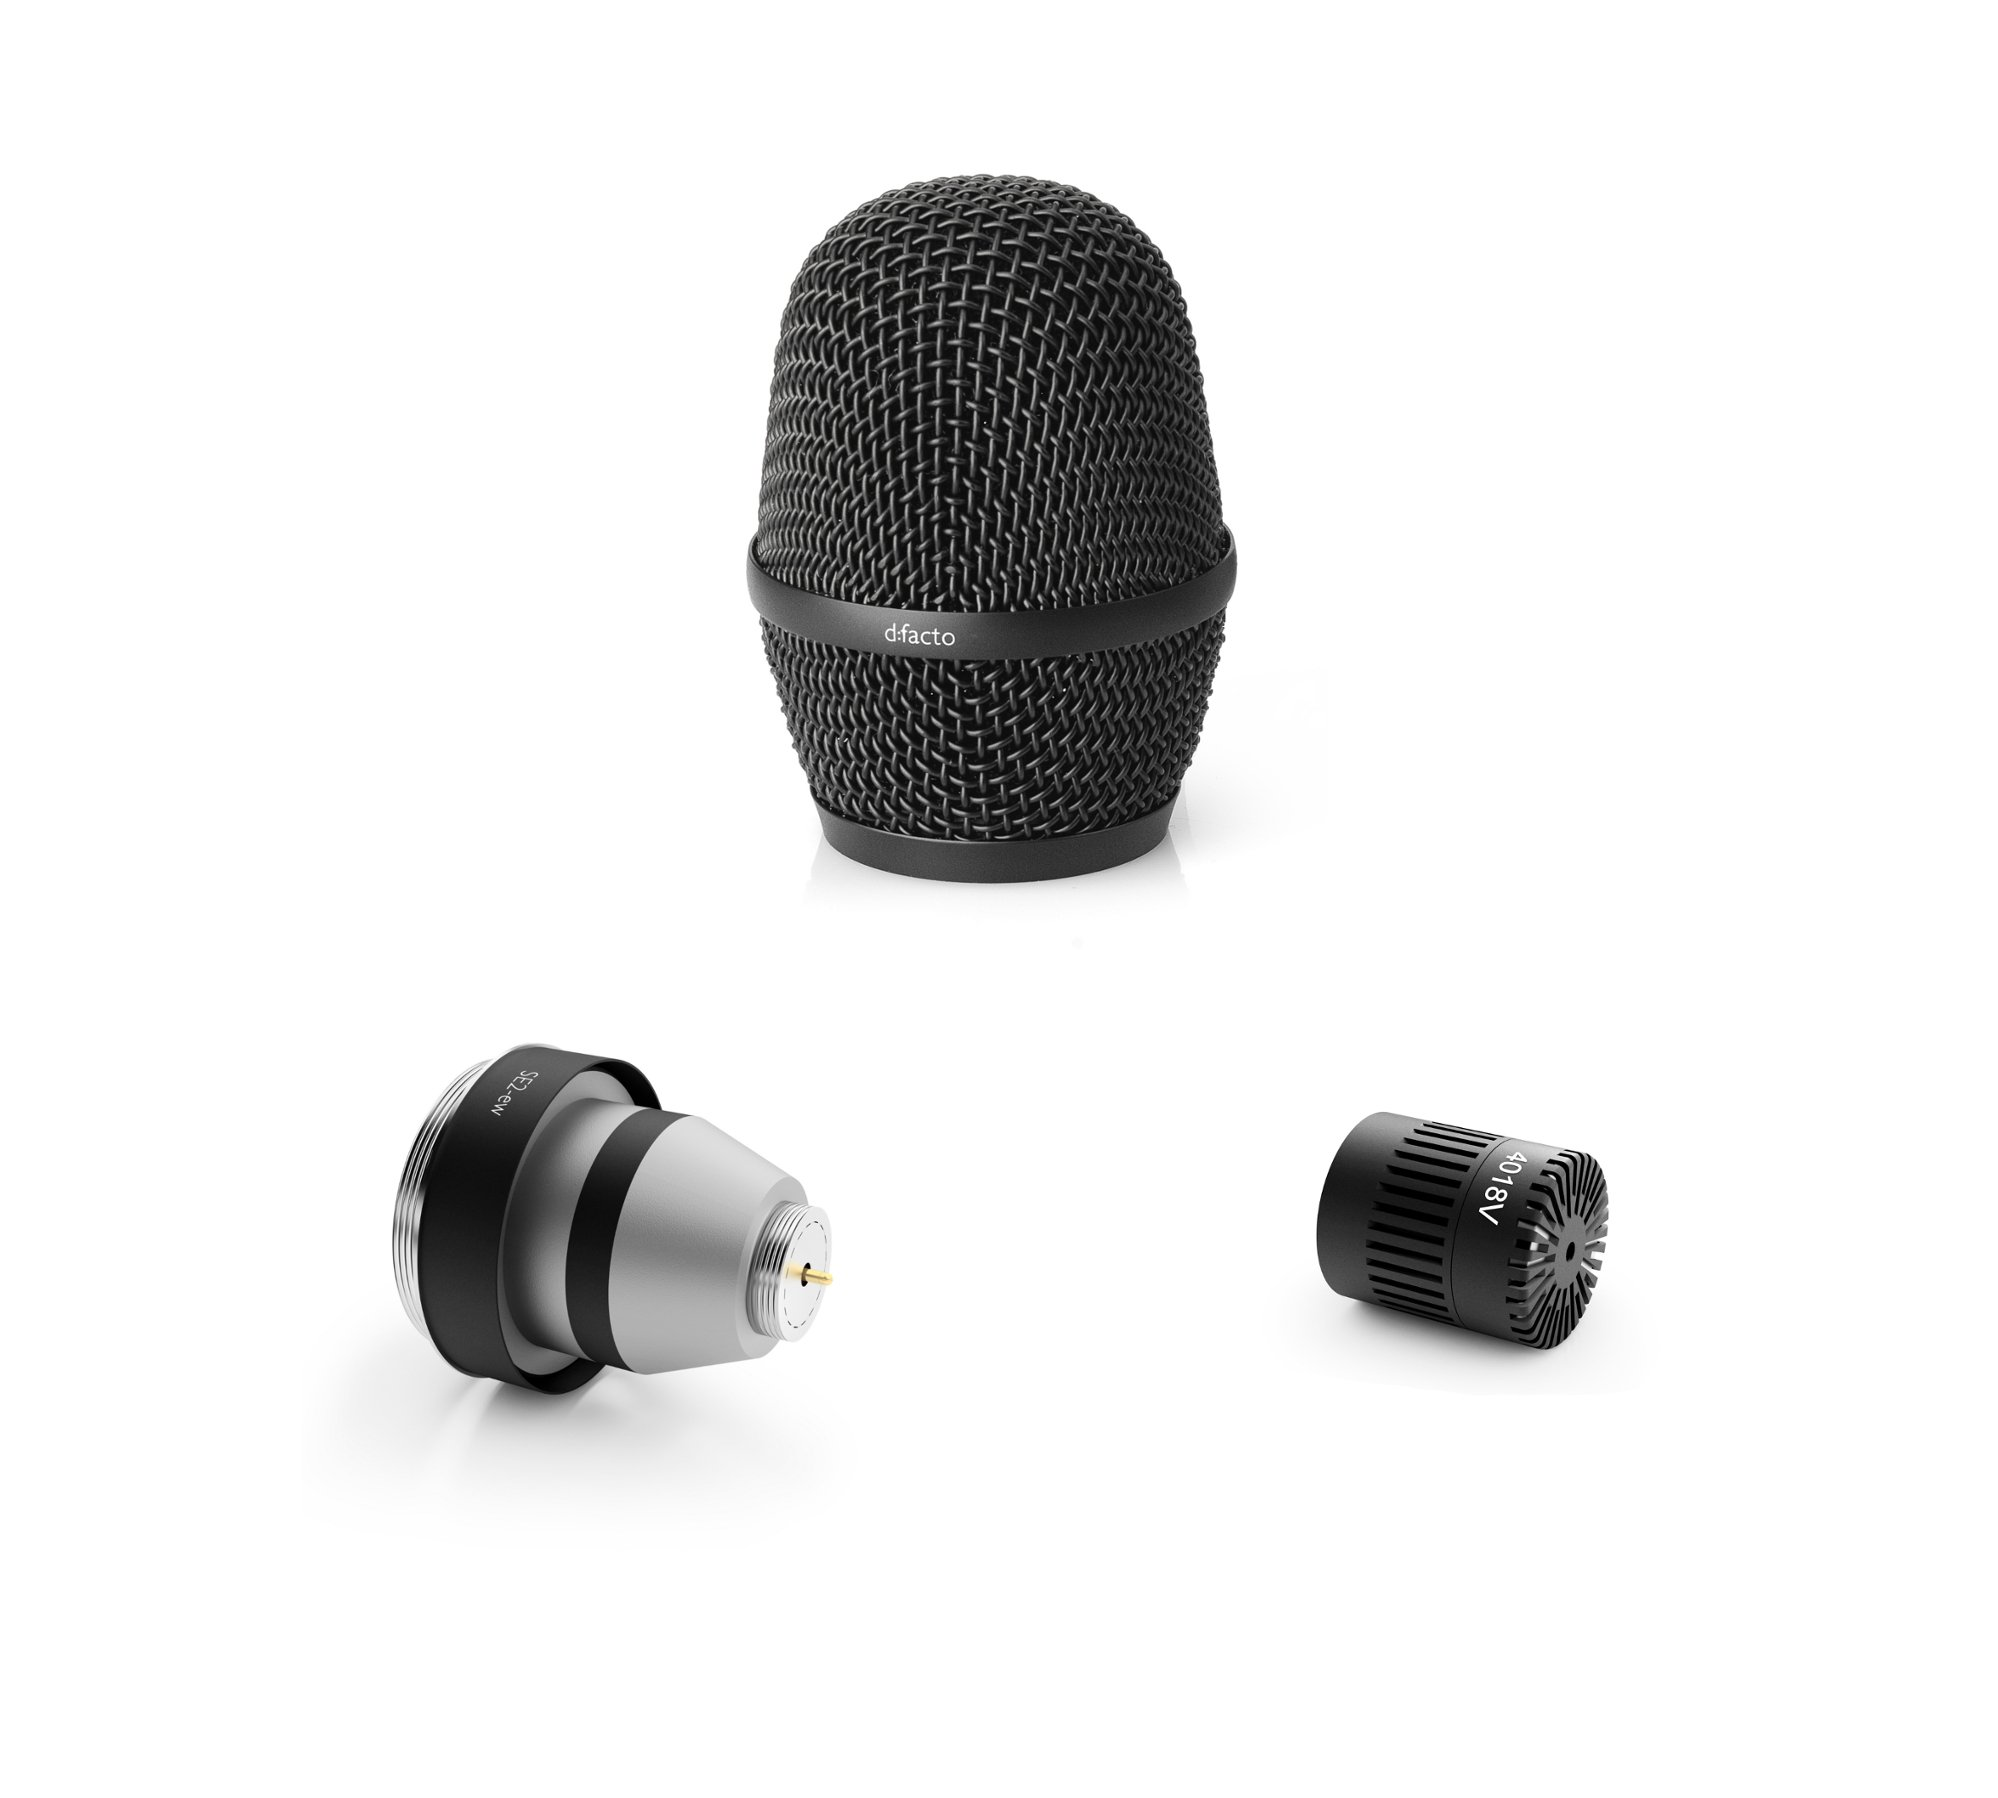 d:facto™ Super Cardioid Vocal Mic Head with Sennheiser Wireless Adapter